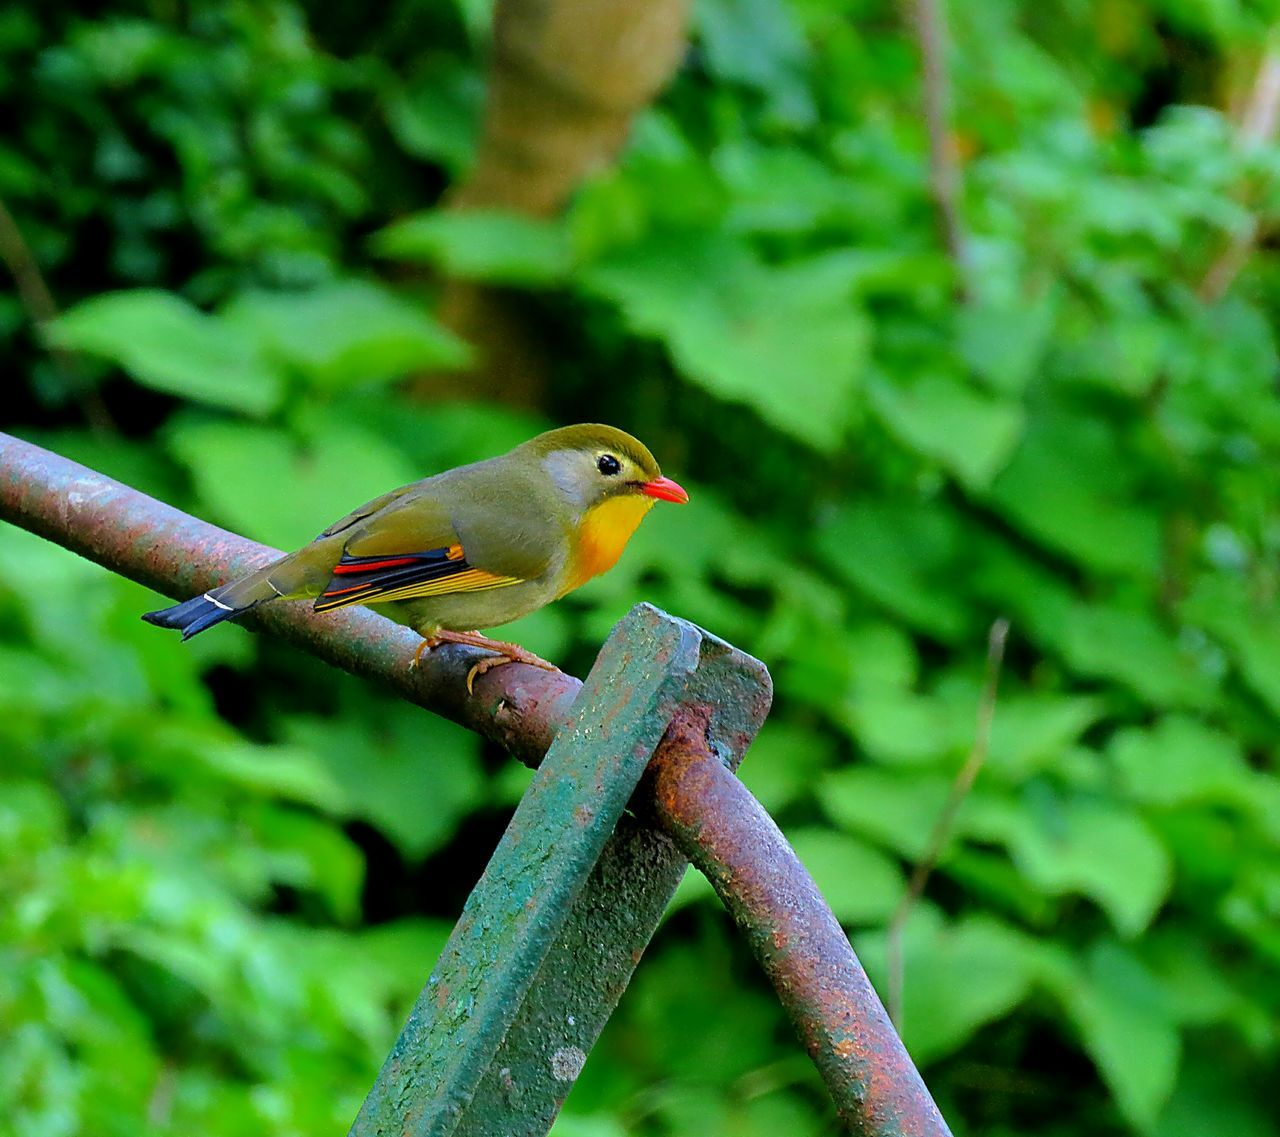 Side View Of Red-billed Leiothrix Perching On Metallic Railing Against Plants